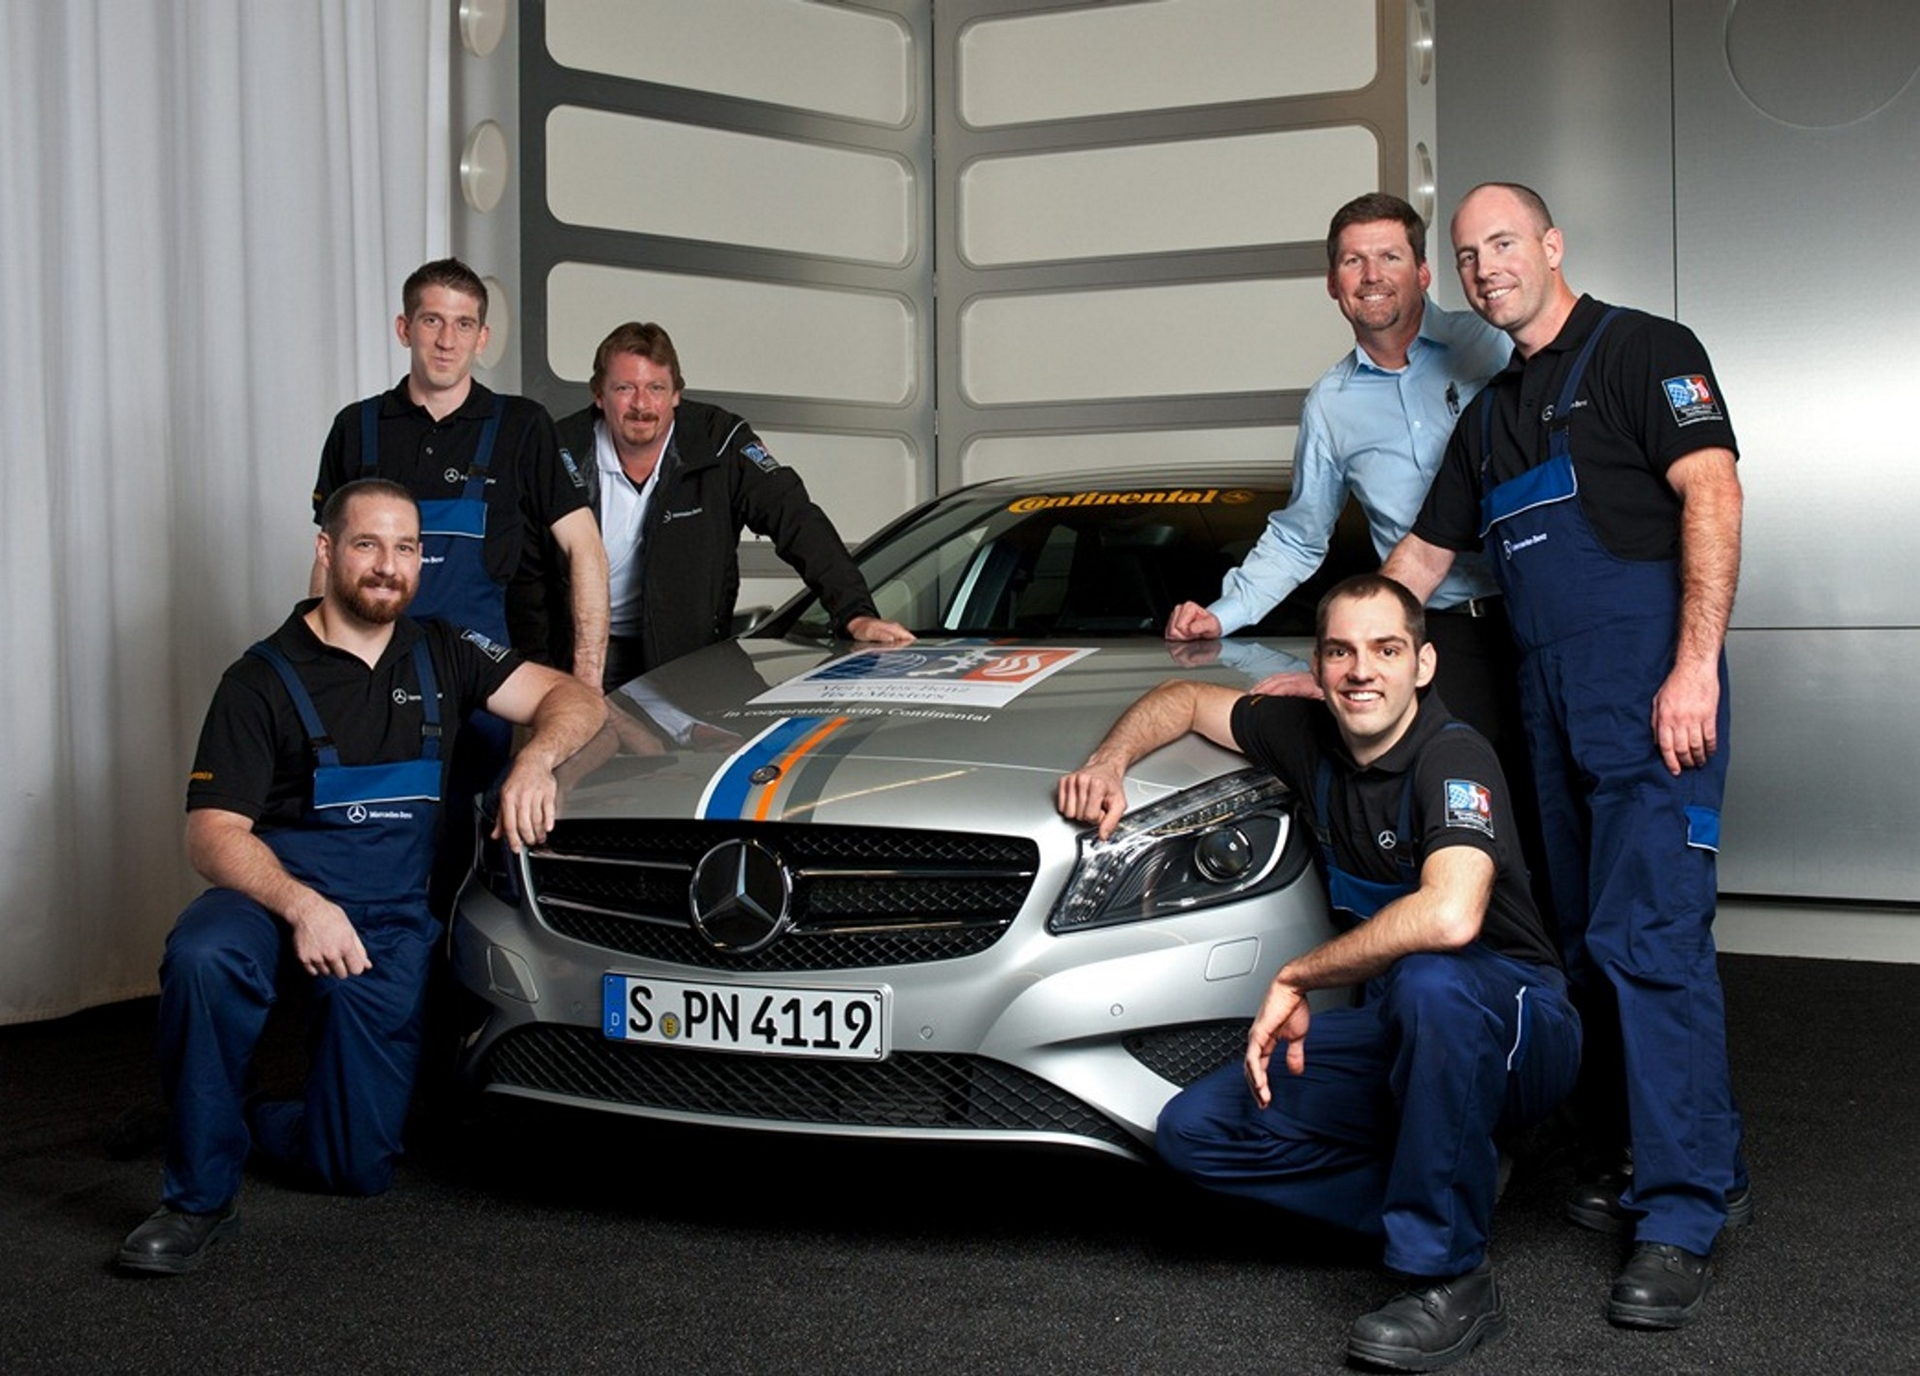 Mercedes benz world championship in passanger car after sales for Mercedes benz road side assistance